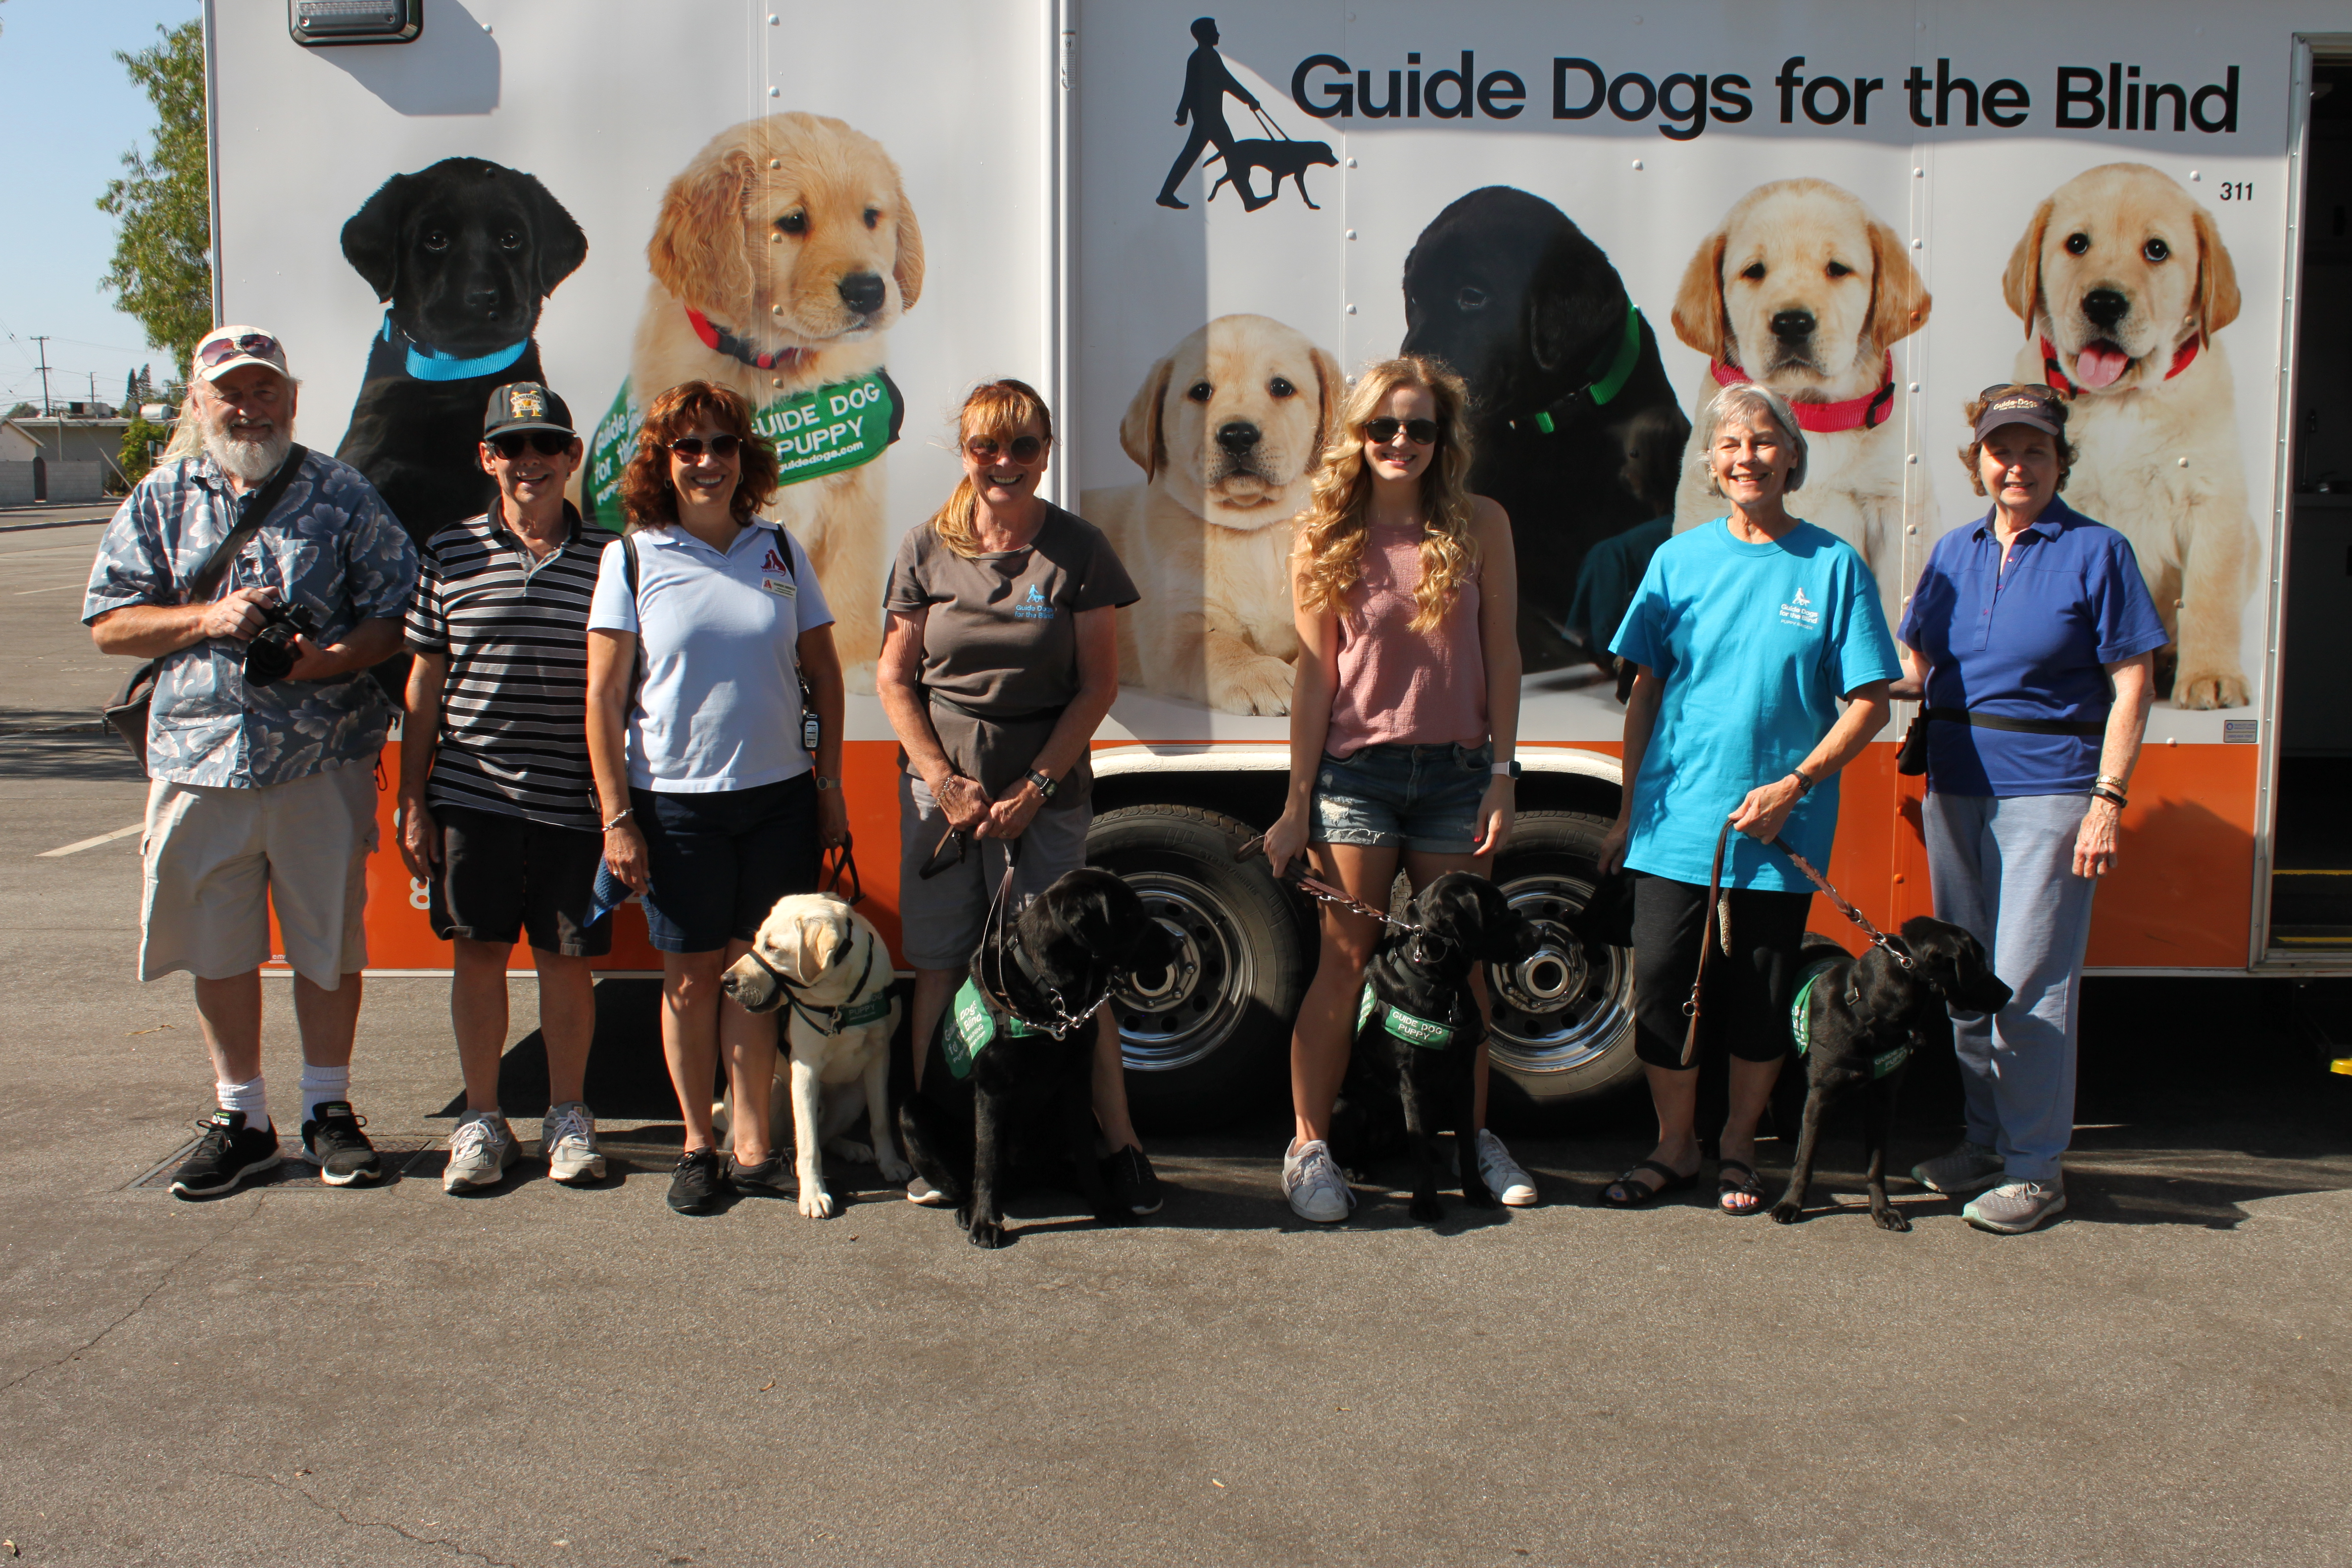 At the Puppy Truck